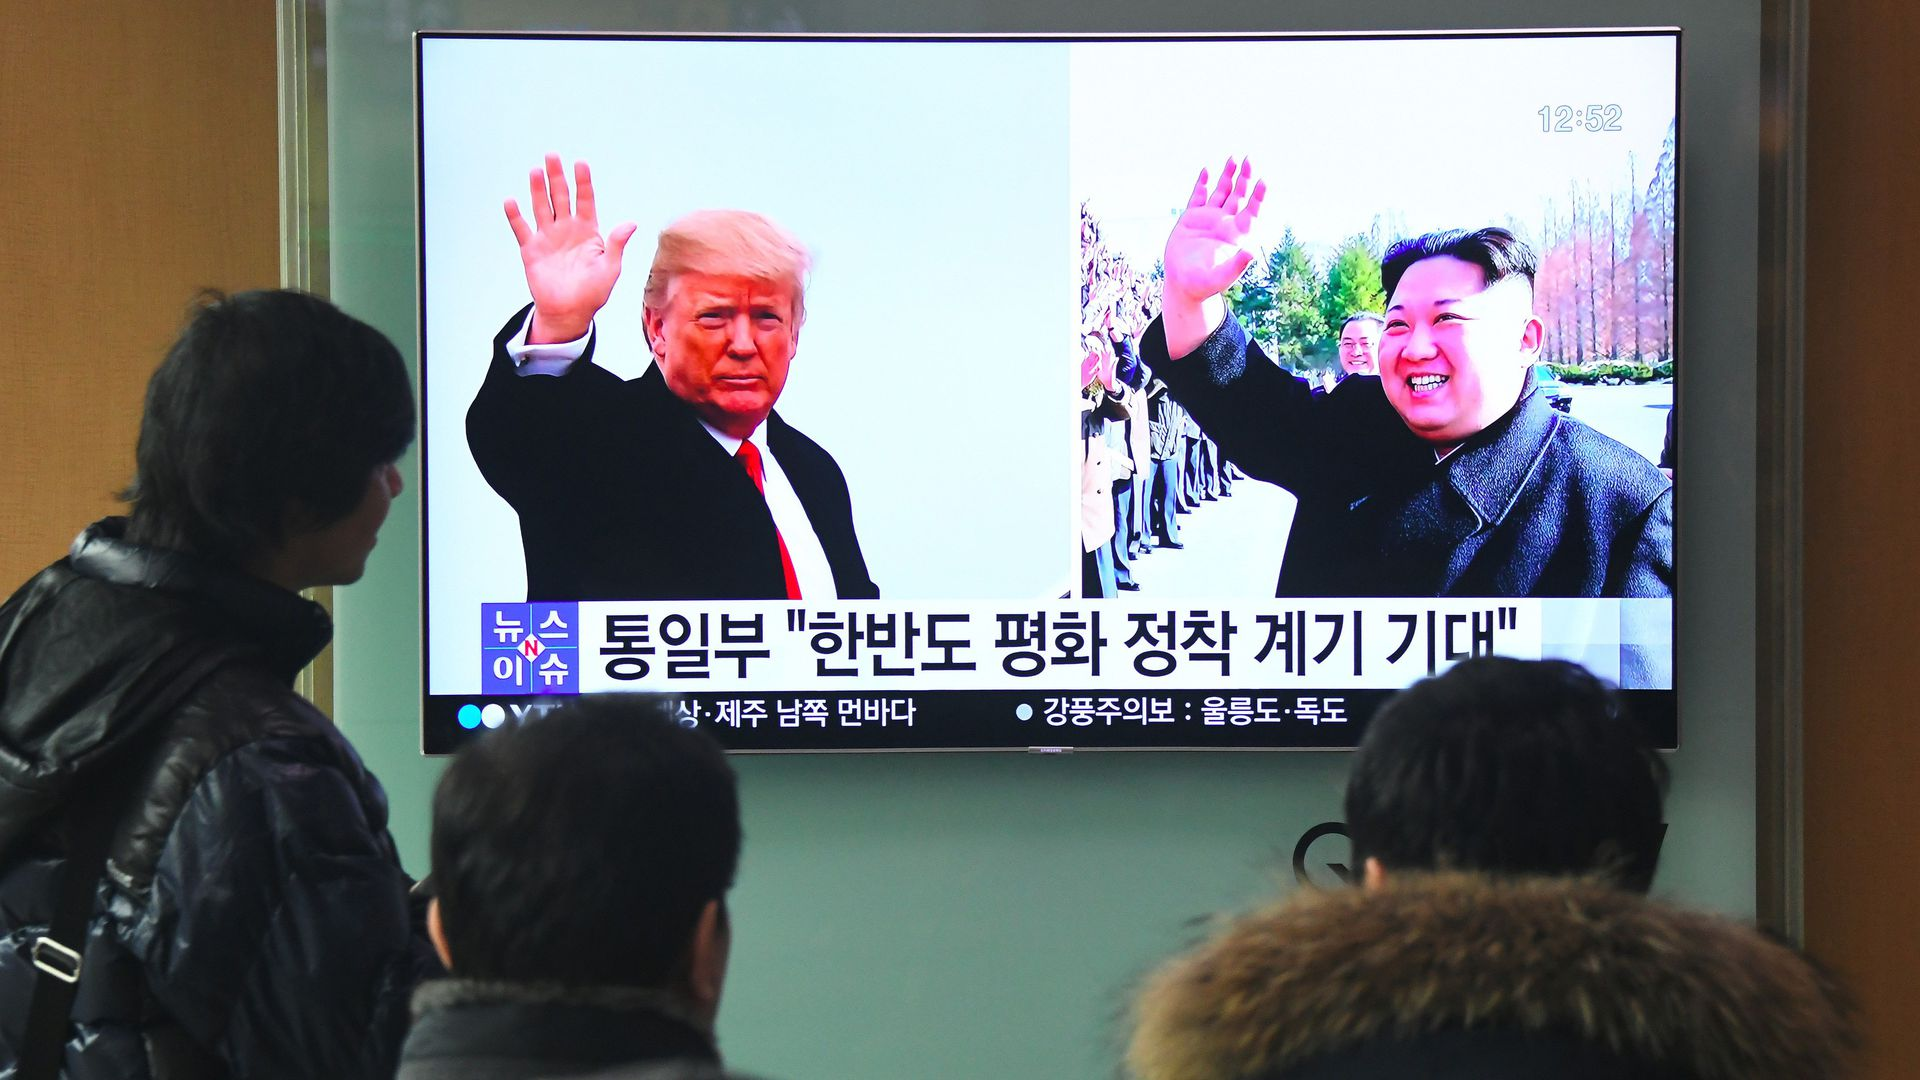 TV in Seoul train station showing Trump and Kim waving in separate photos